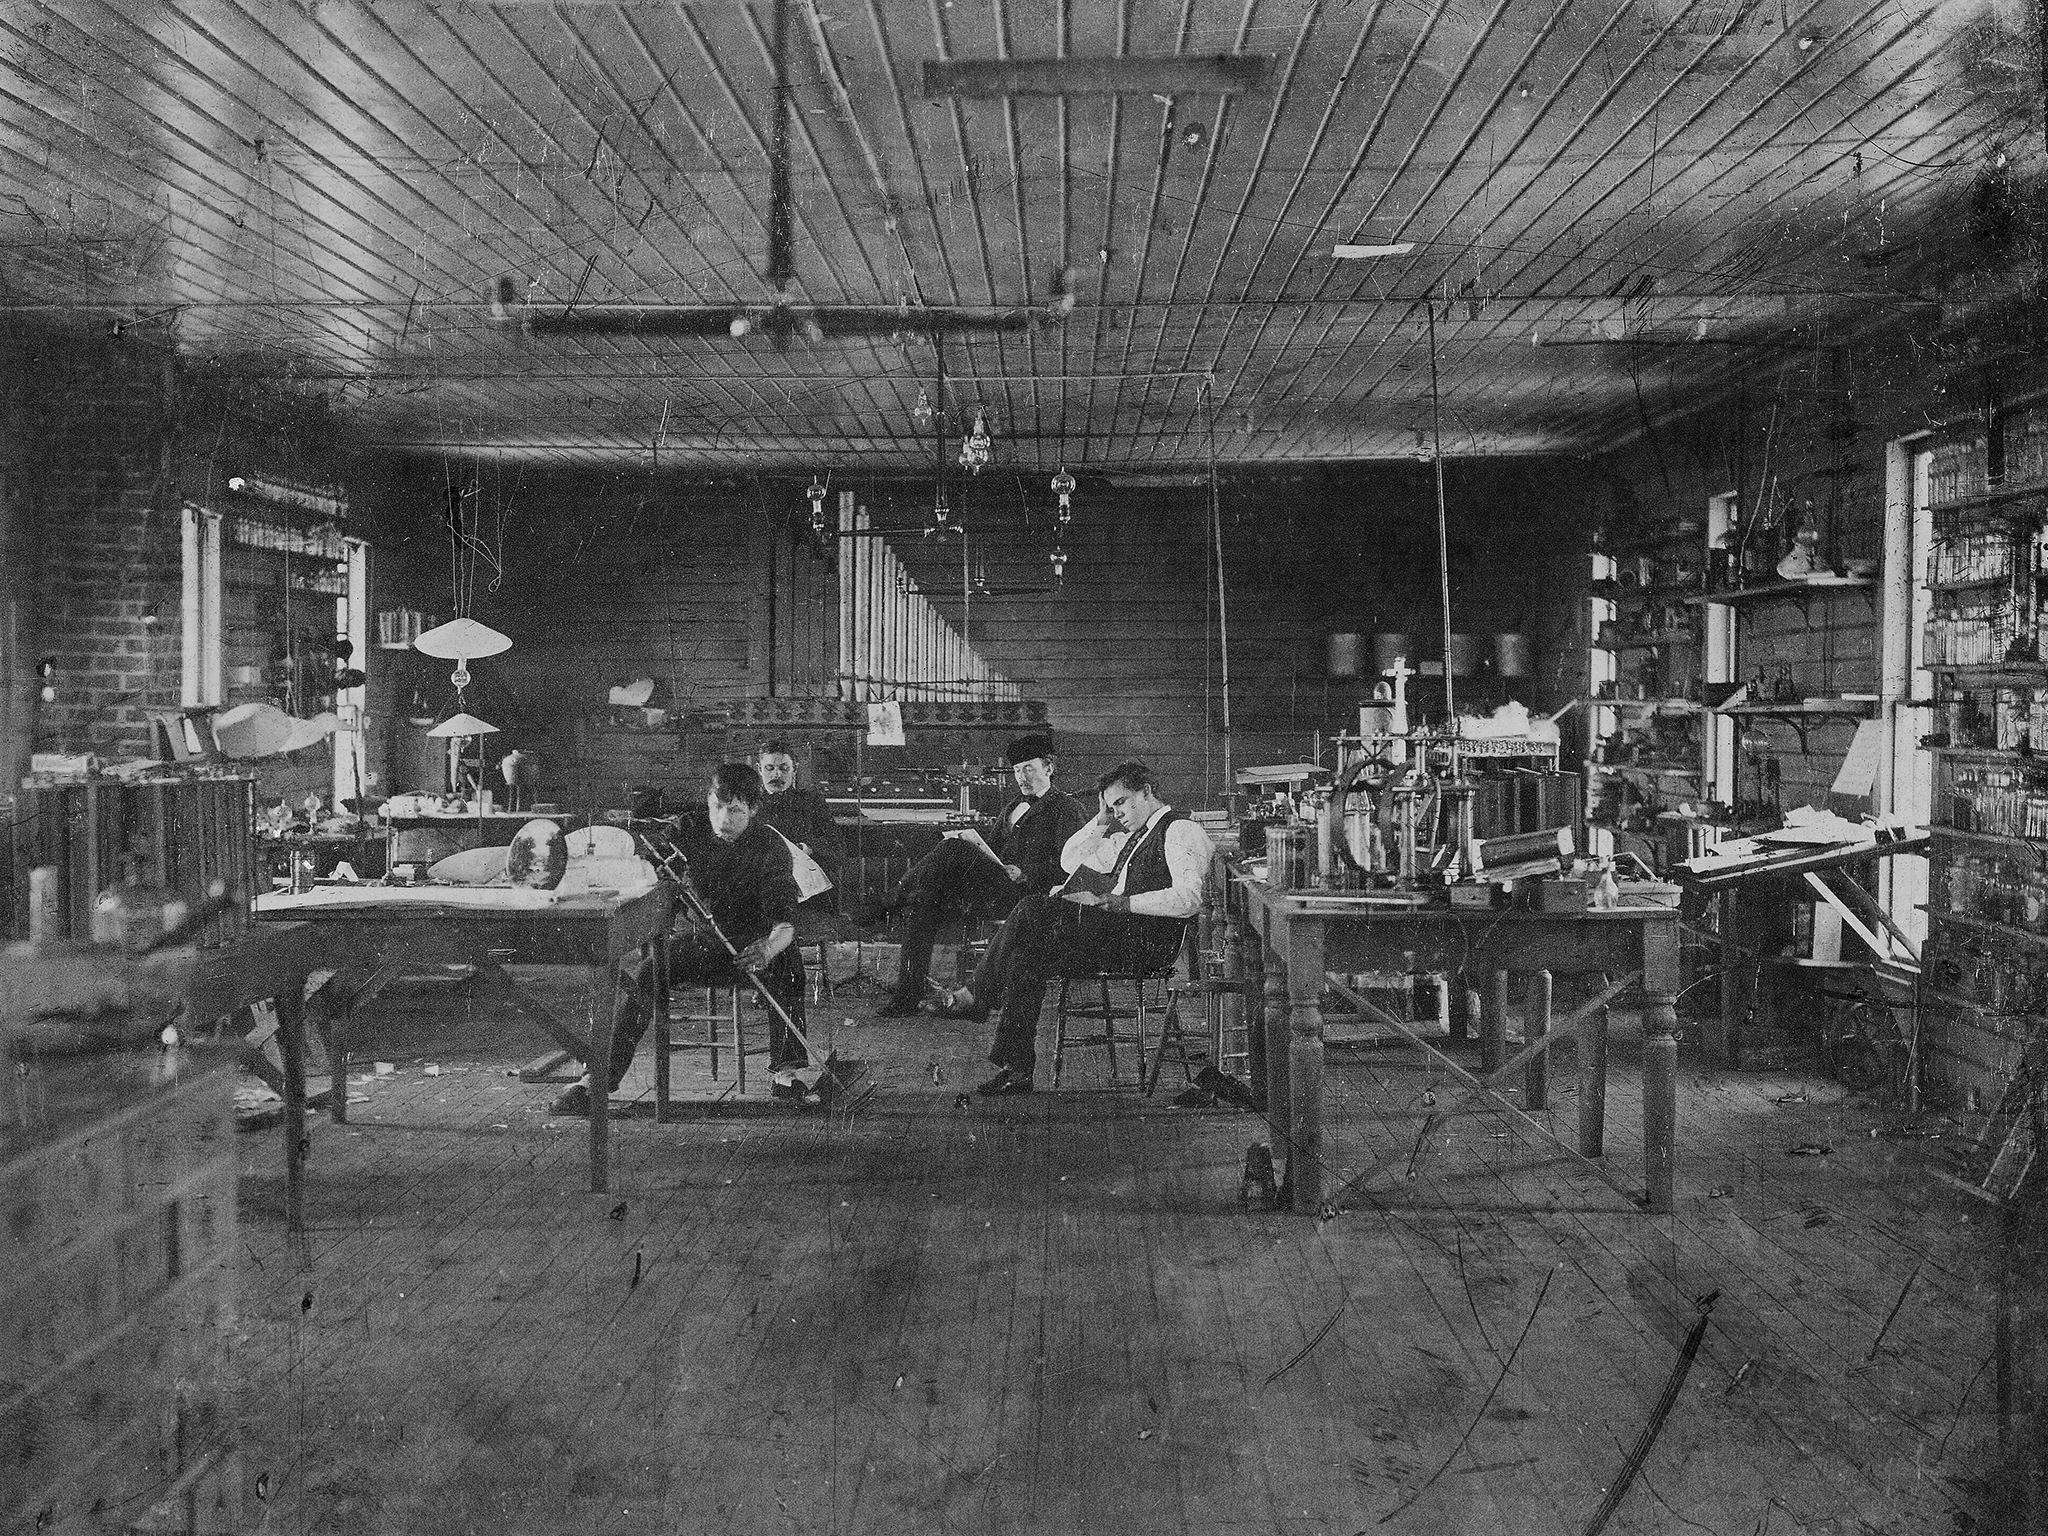 Thomas Edison's Assistants - A Picture From The Past